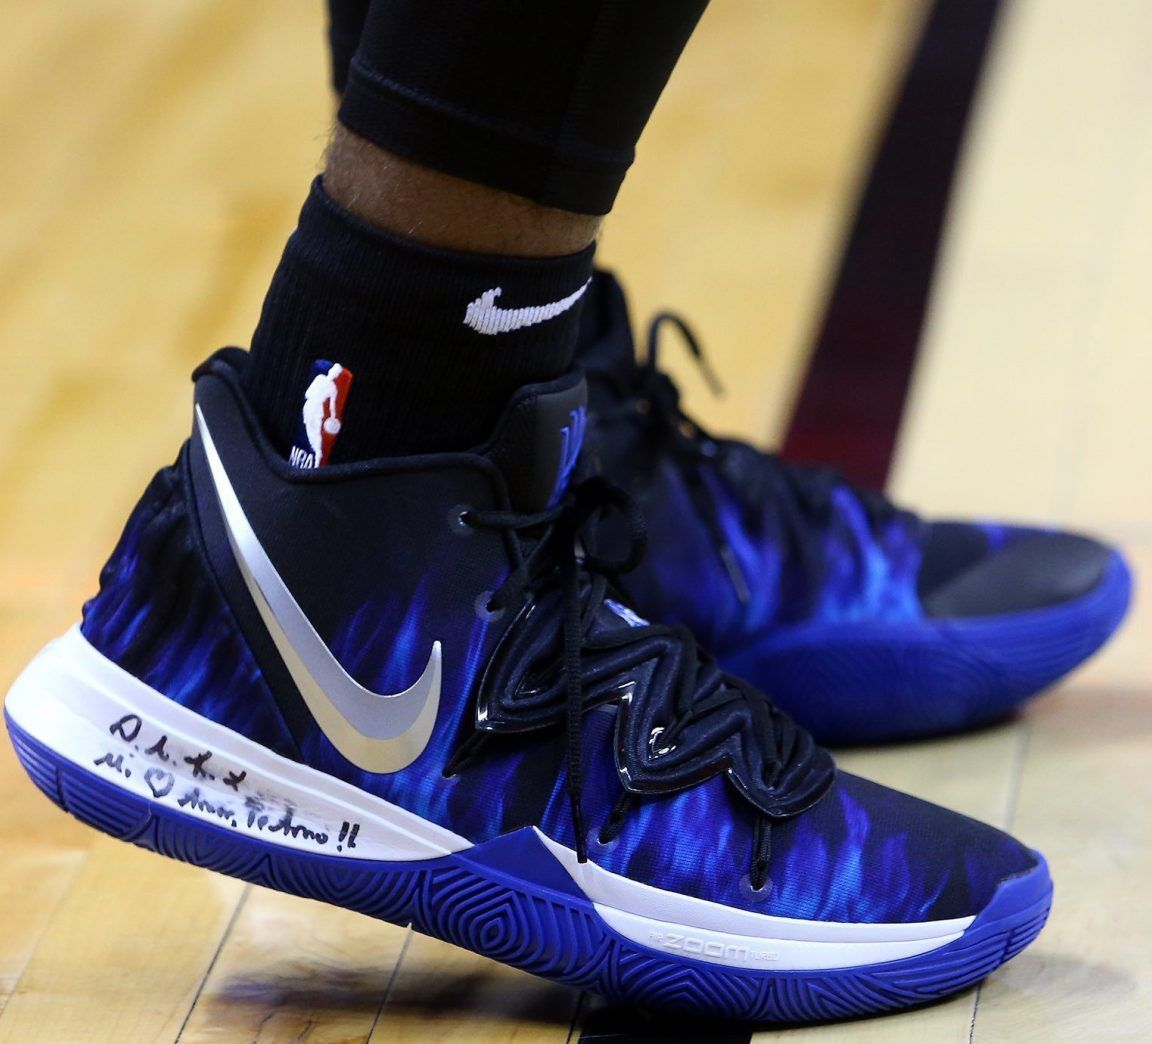 Kyrie irving shoes, Sneakers fashion